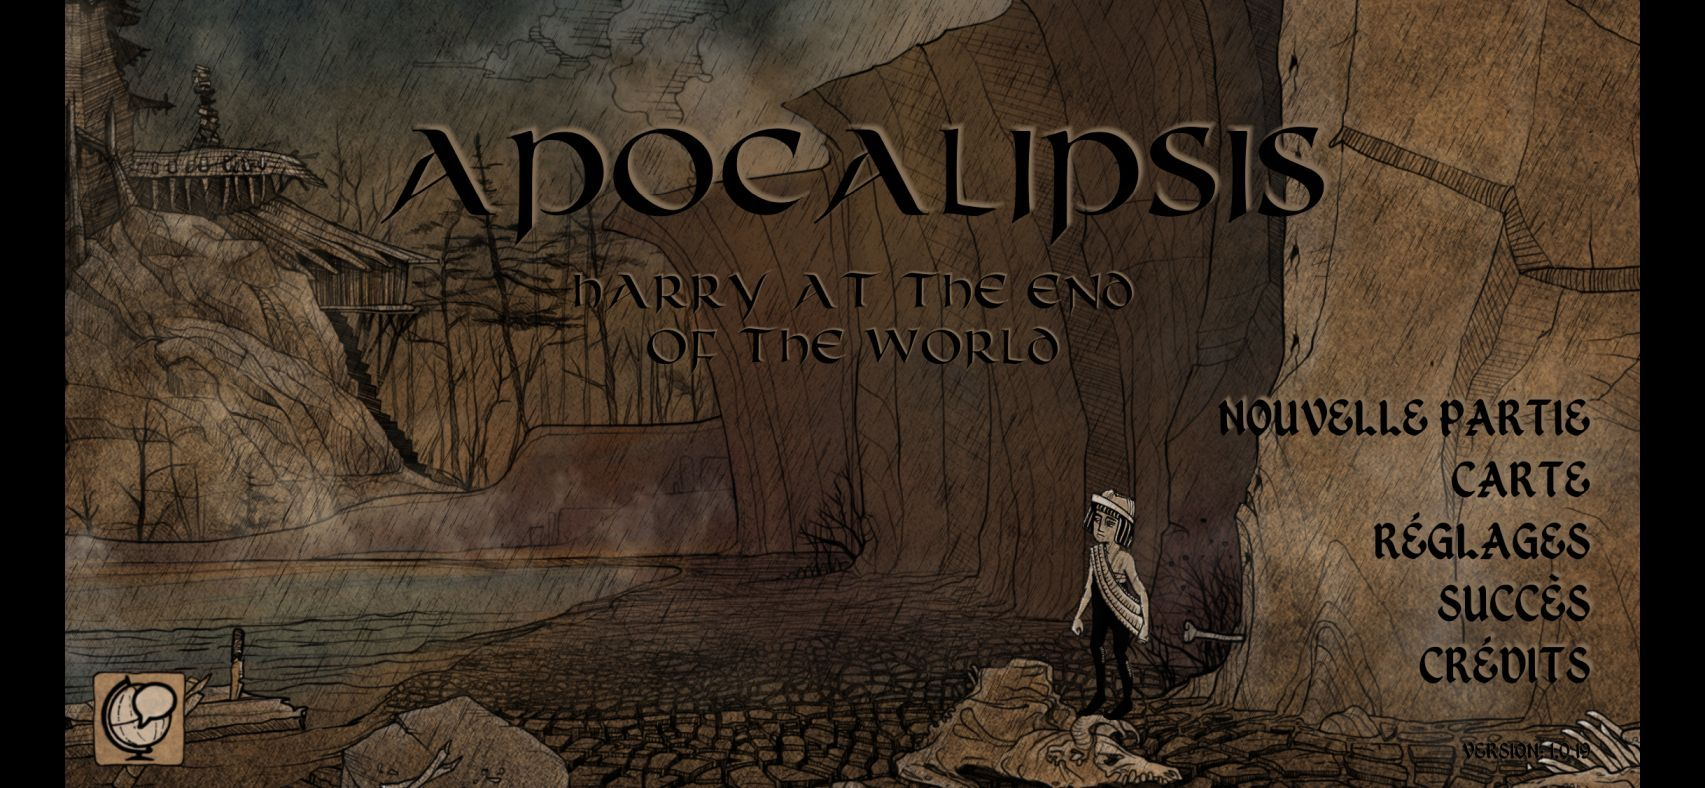 Apocalipsis - Harry au bout du monde (copie d'écran 1 sur Android)